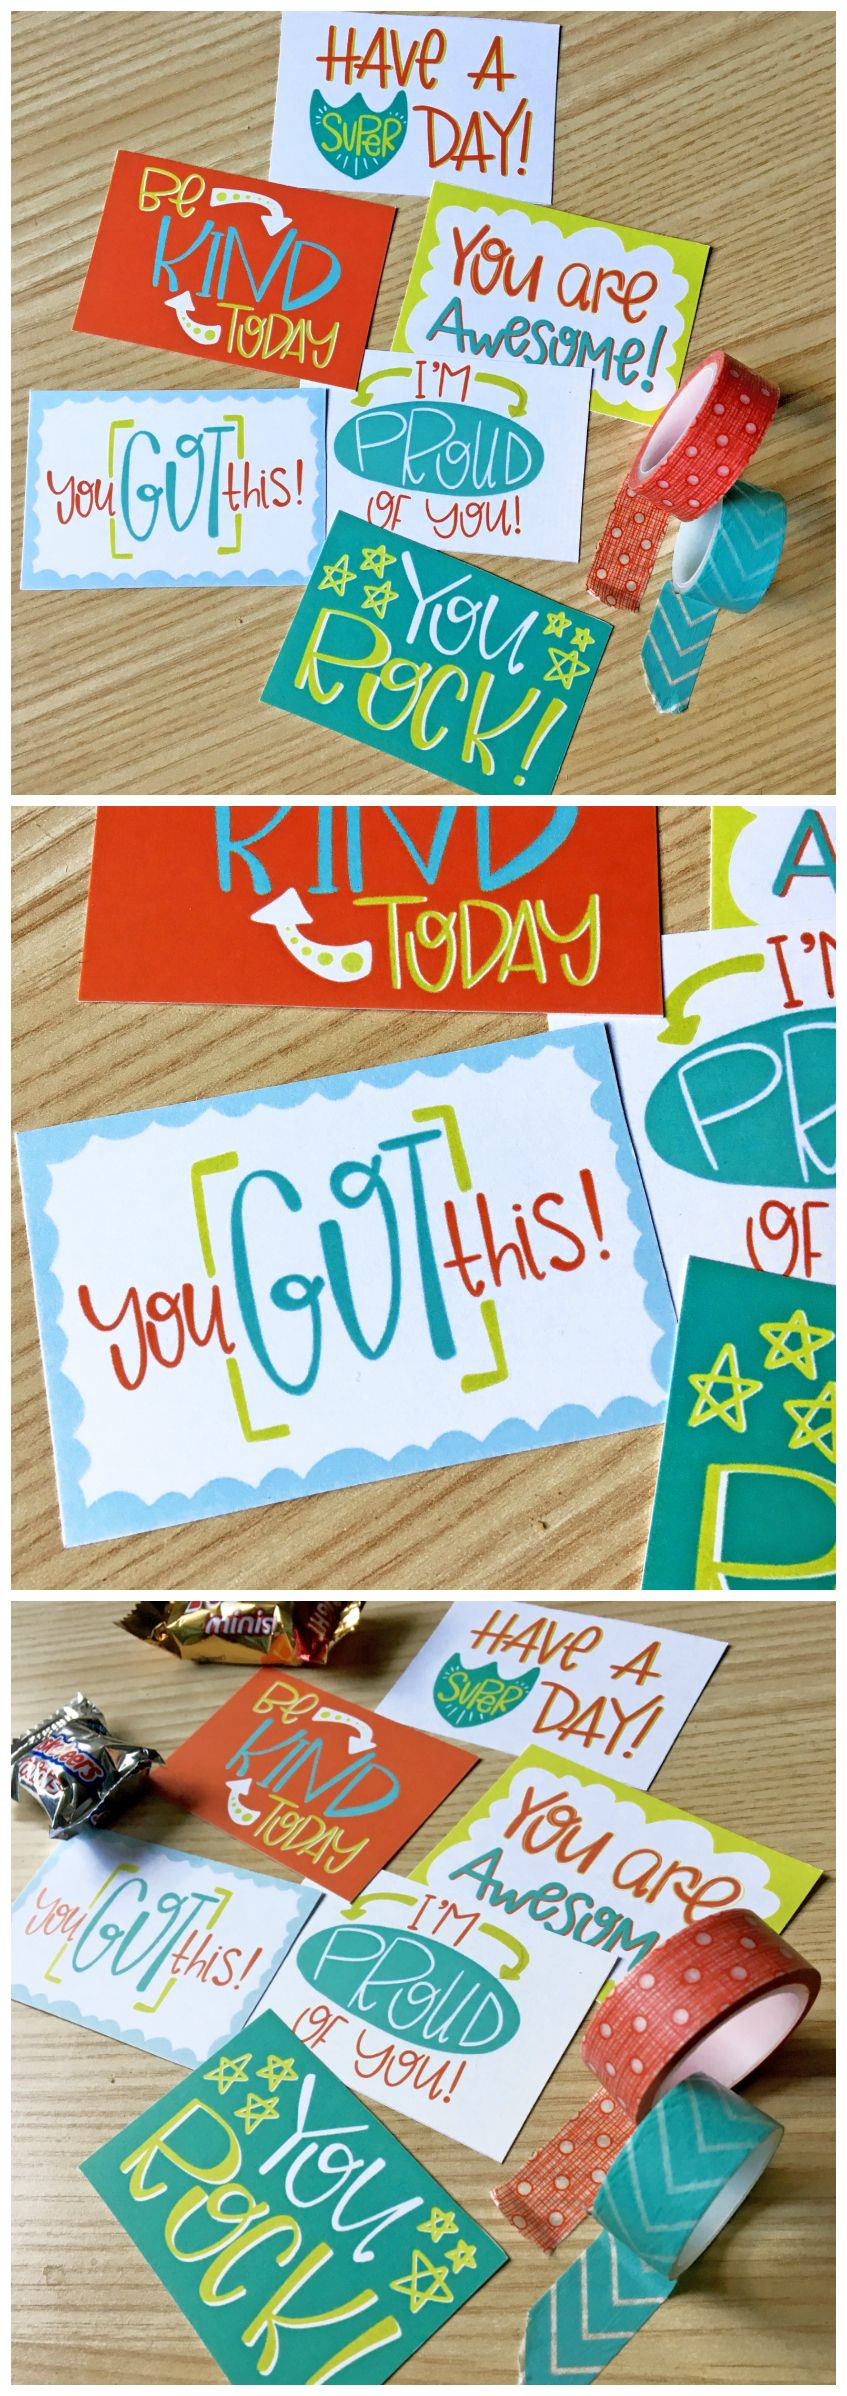 Free Printable Lunch Box Notes   These lunchbox notes have encouraging messages on them in bright happy colors!